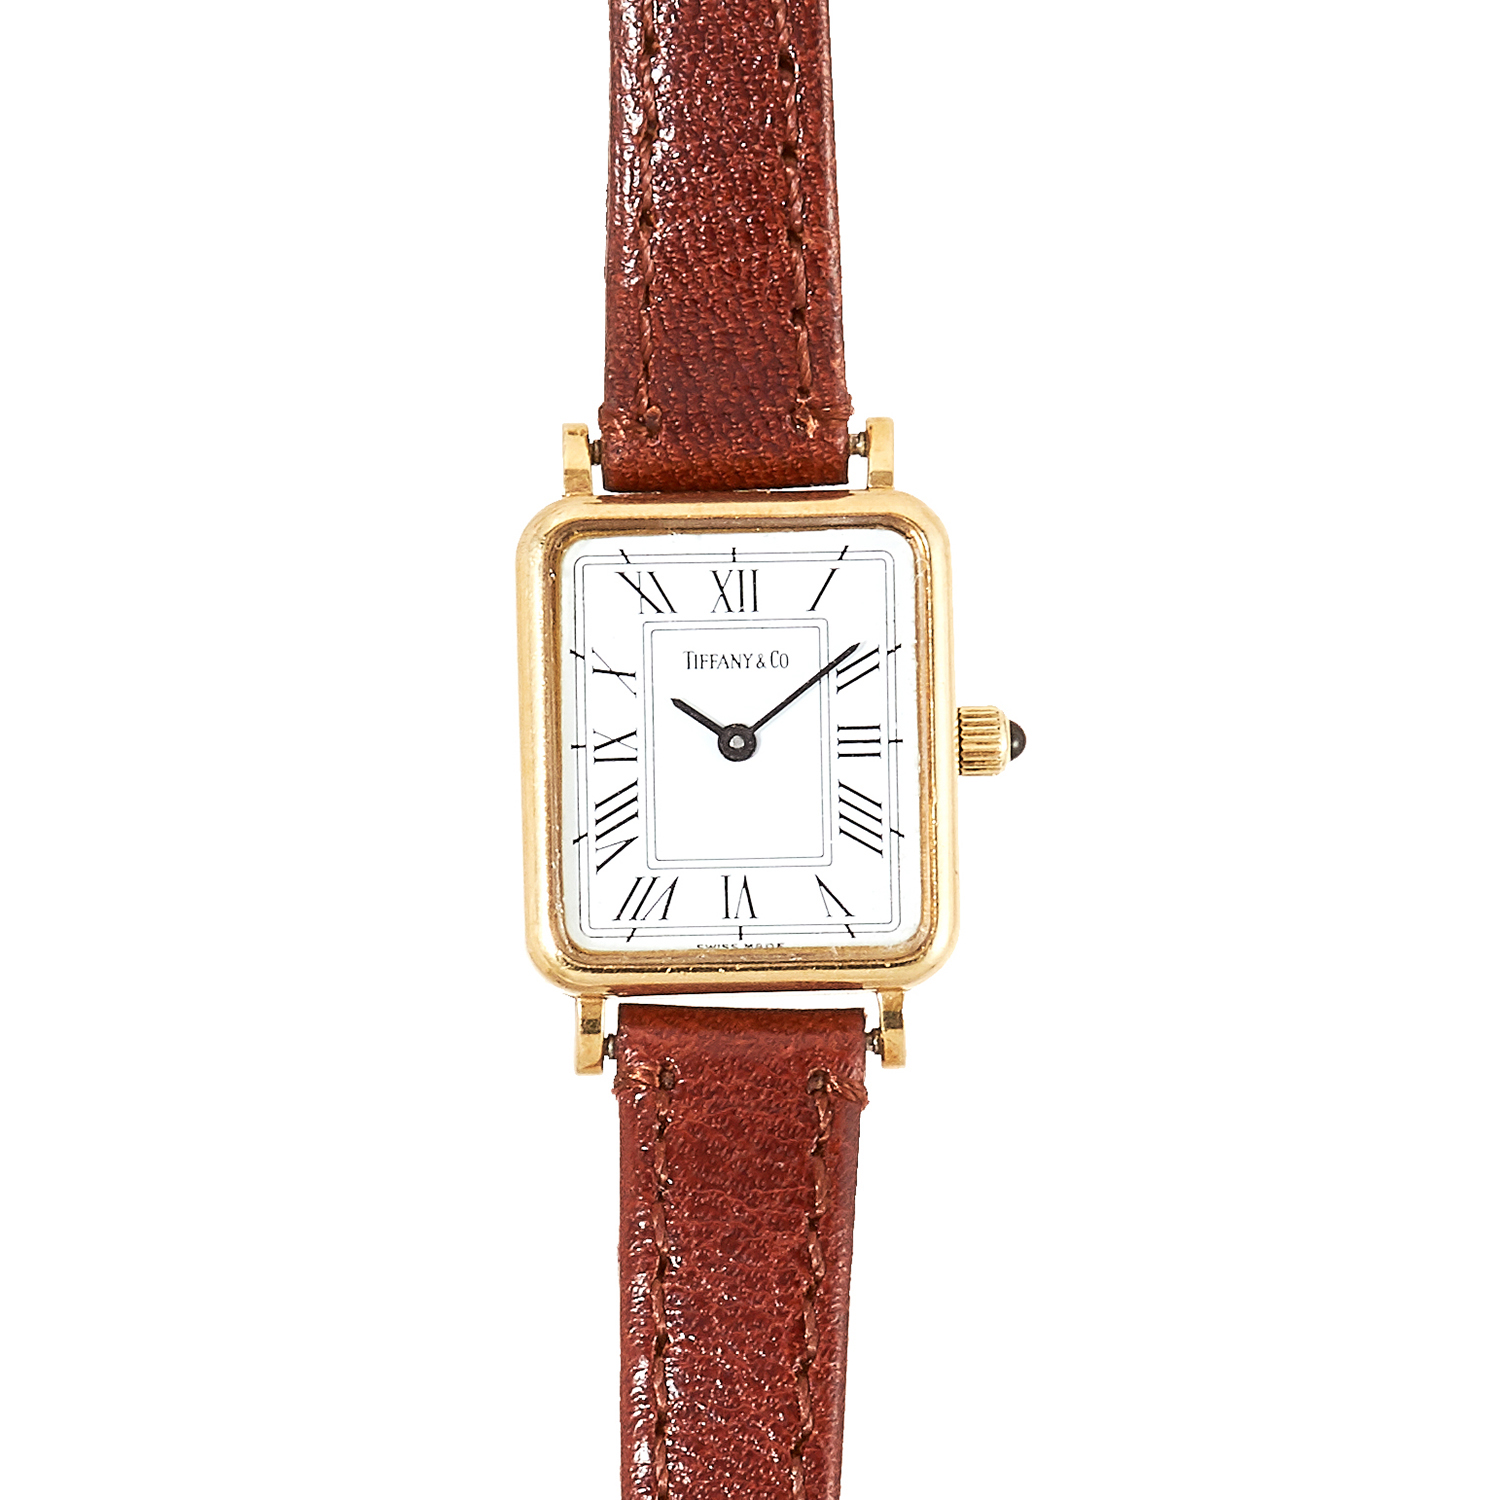 Los 111 - A LADIES WRISTWATCH, TIFFANY AND CO in 14ct yellow gold, with white dial in yellow gold case, on